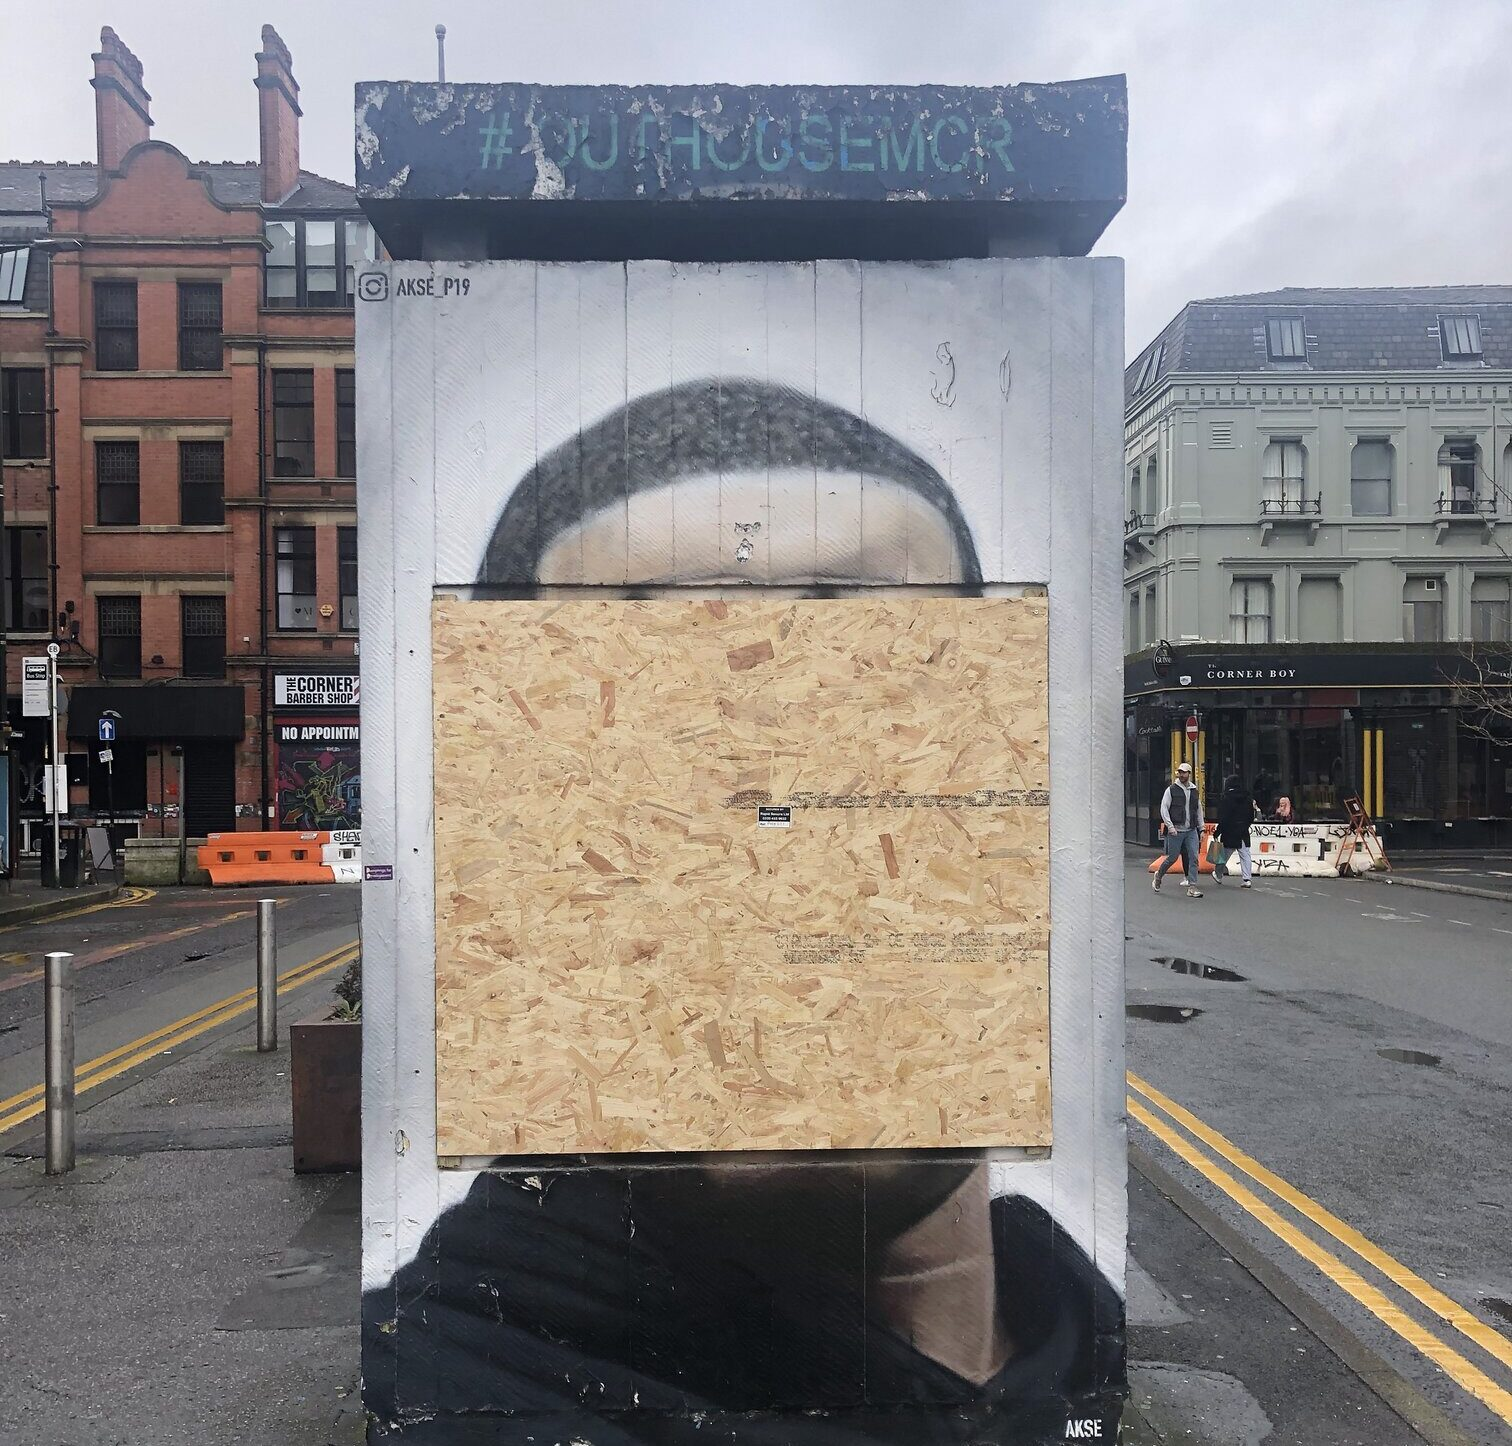 The George Floyd mural in the Northern Quarter has been defaced again, The Manc